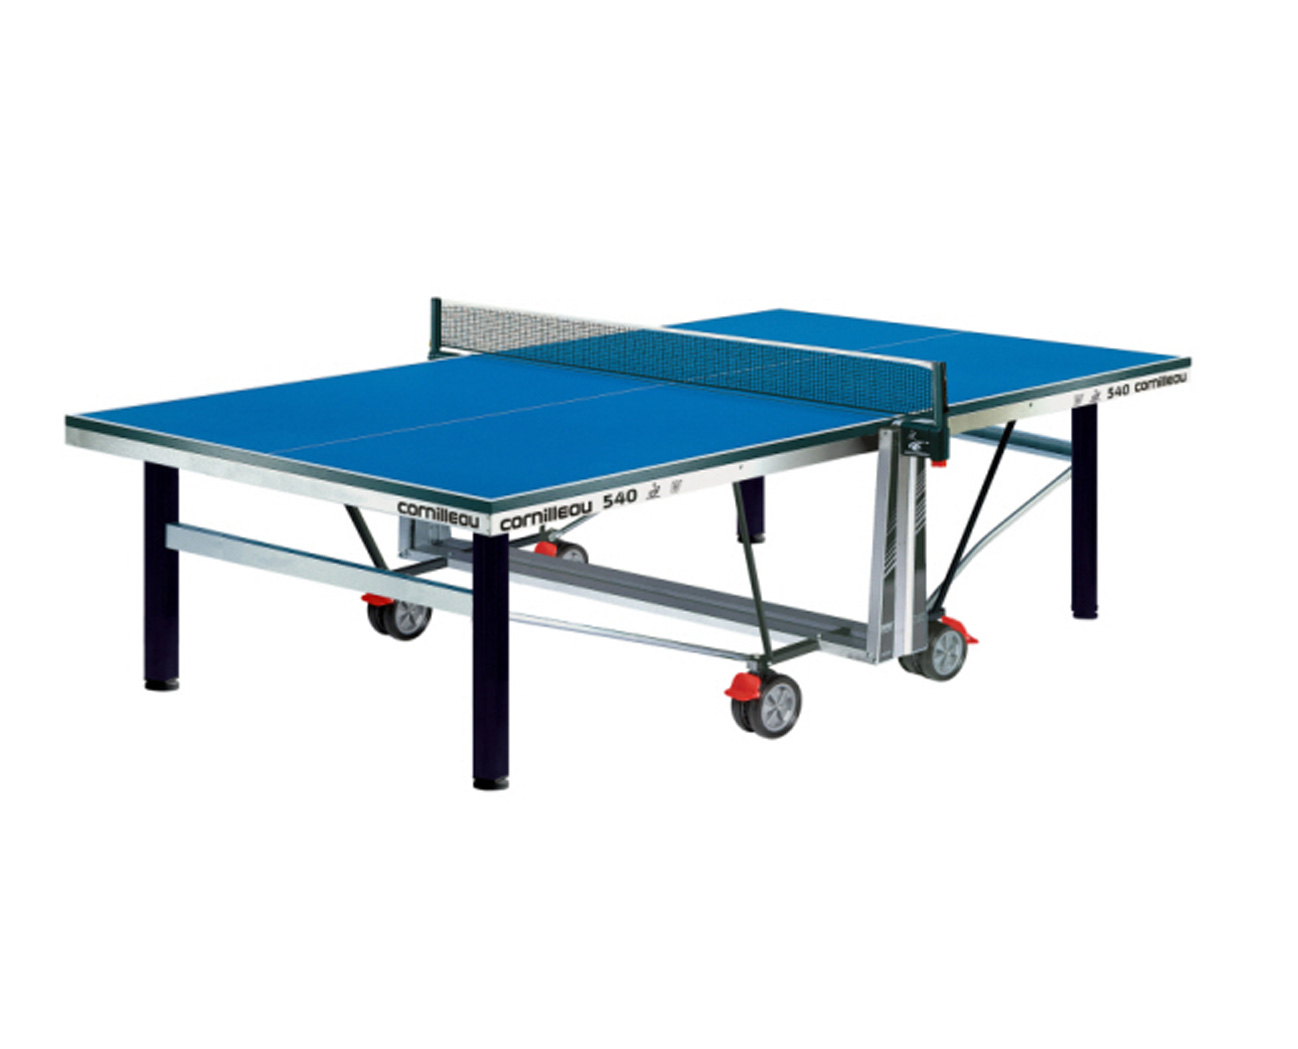 Cornilleau 540 ittf competition snooker pool table company ltd - Equipment for table tennis ...